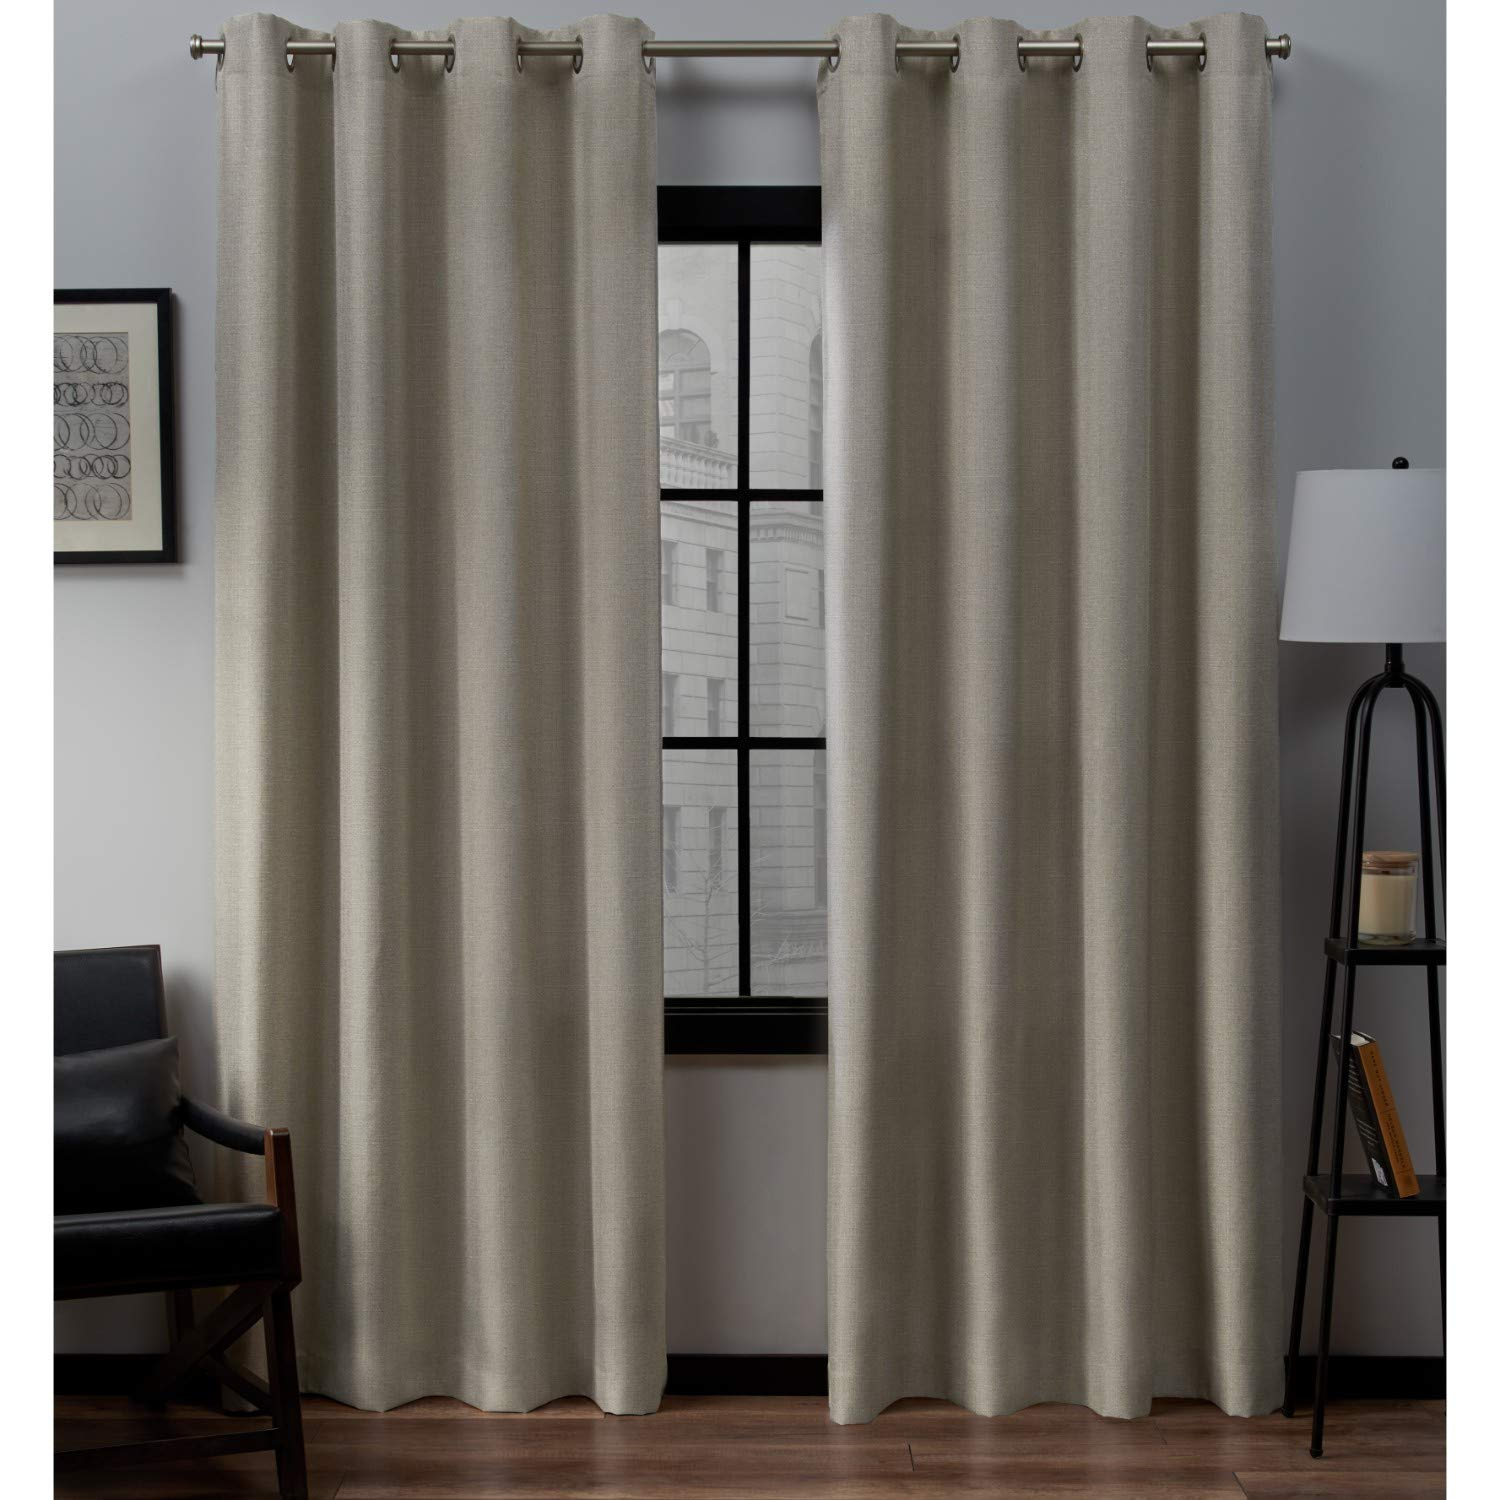 Exclusive Home Curtains Loha Linen Grommet Top Curtain Panel Pair, 52x84, Natural